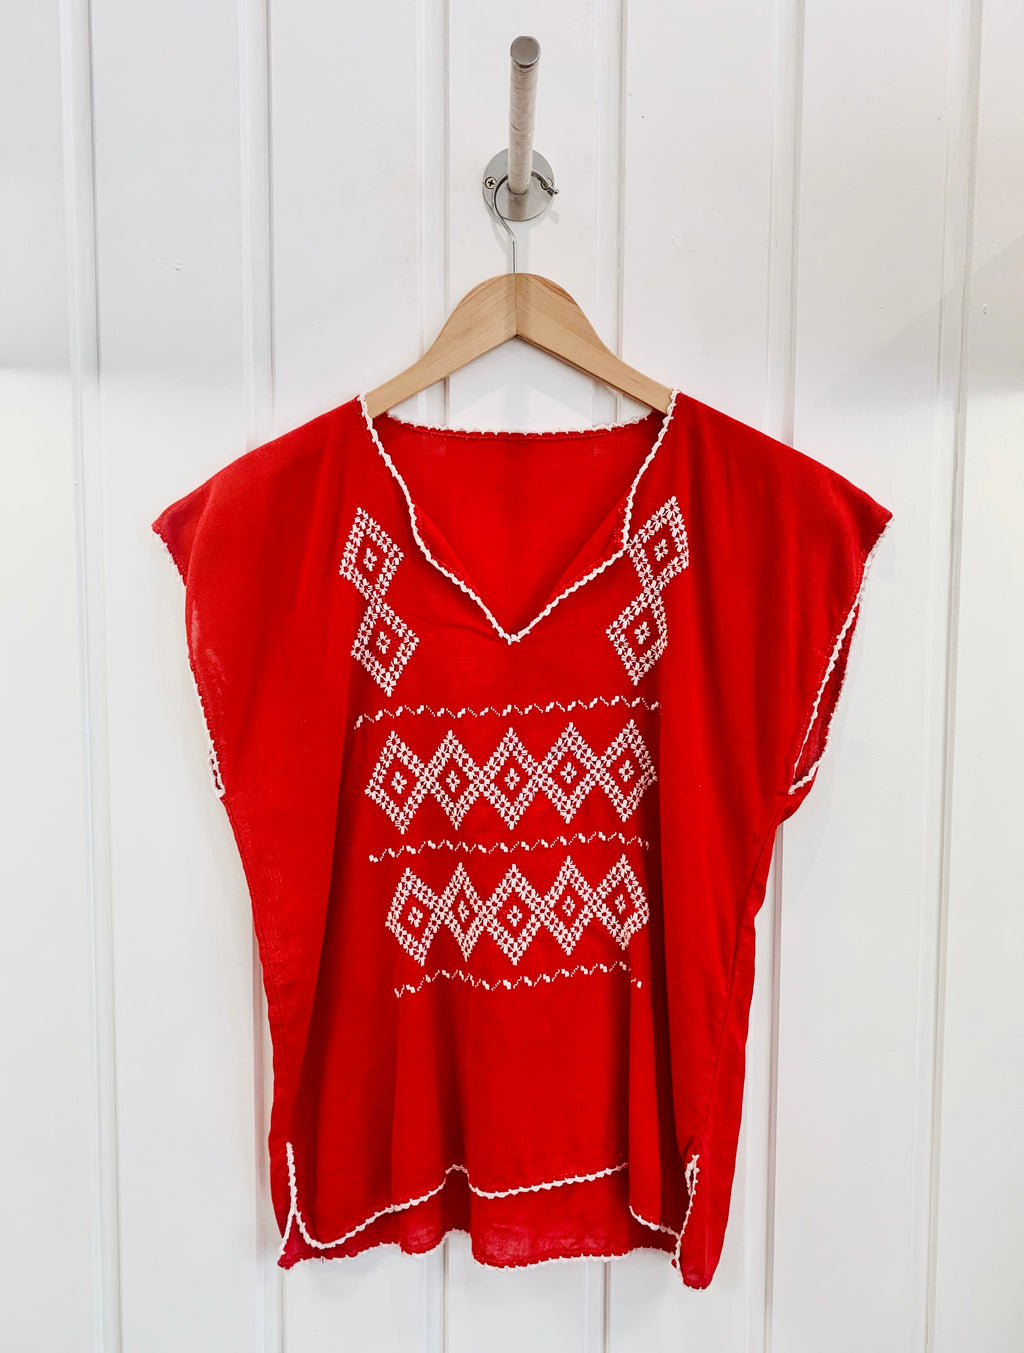 1970's Handmade Mexican Vintage Top